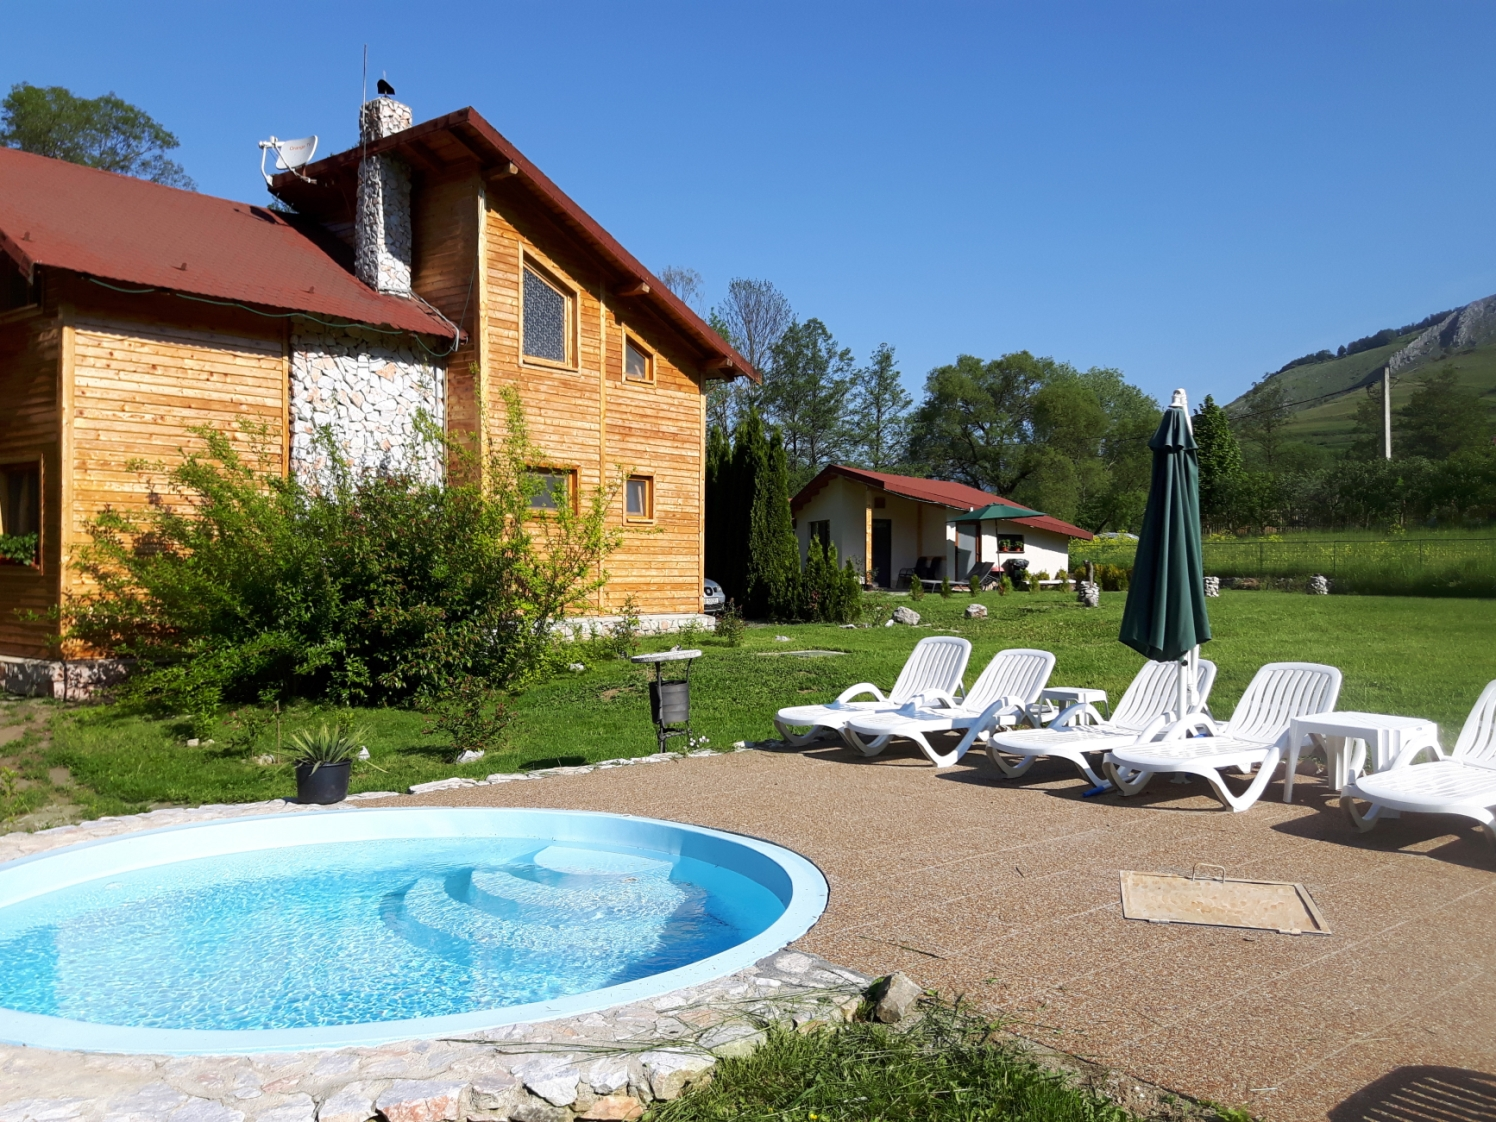 Ferienwohnung Holiday Home in Transylvania